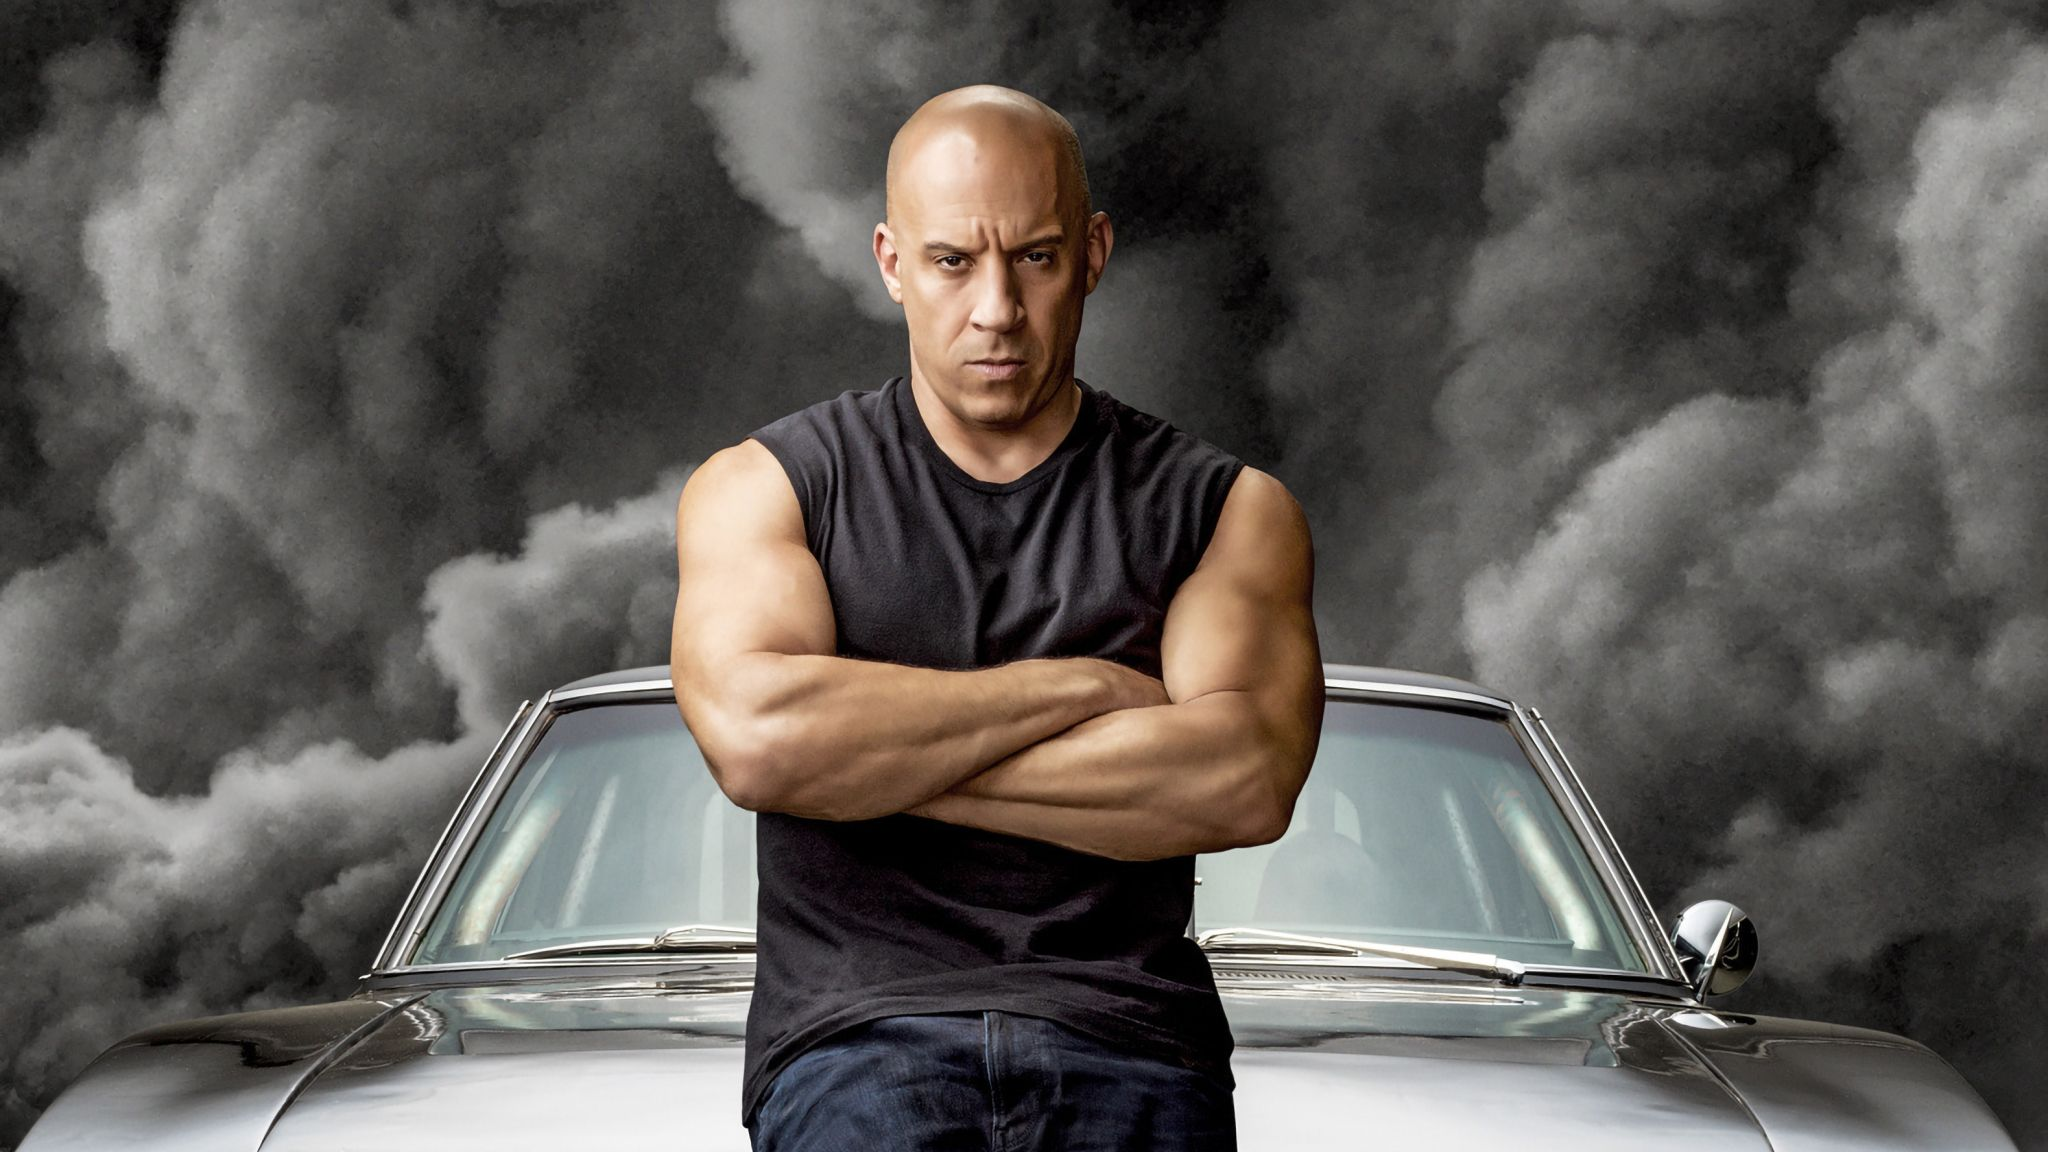 Fast Furious 9 Wallpapers Top Free Fast Furious 9 Backgrounds Wallpaperaccess